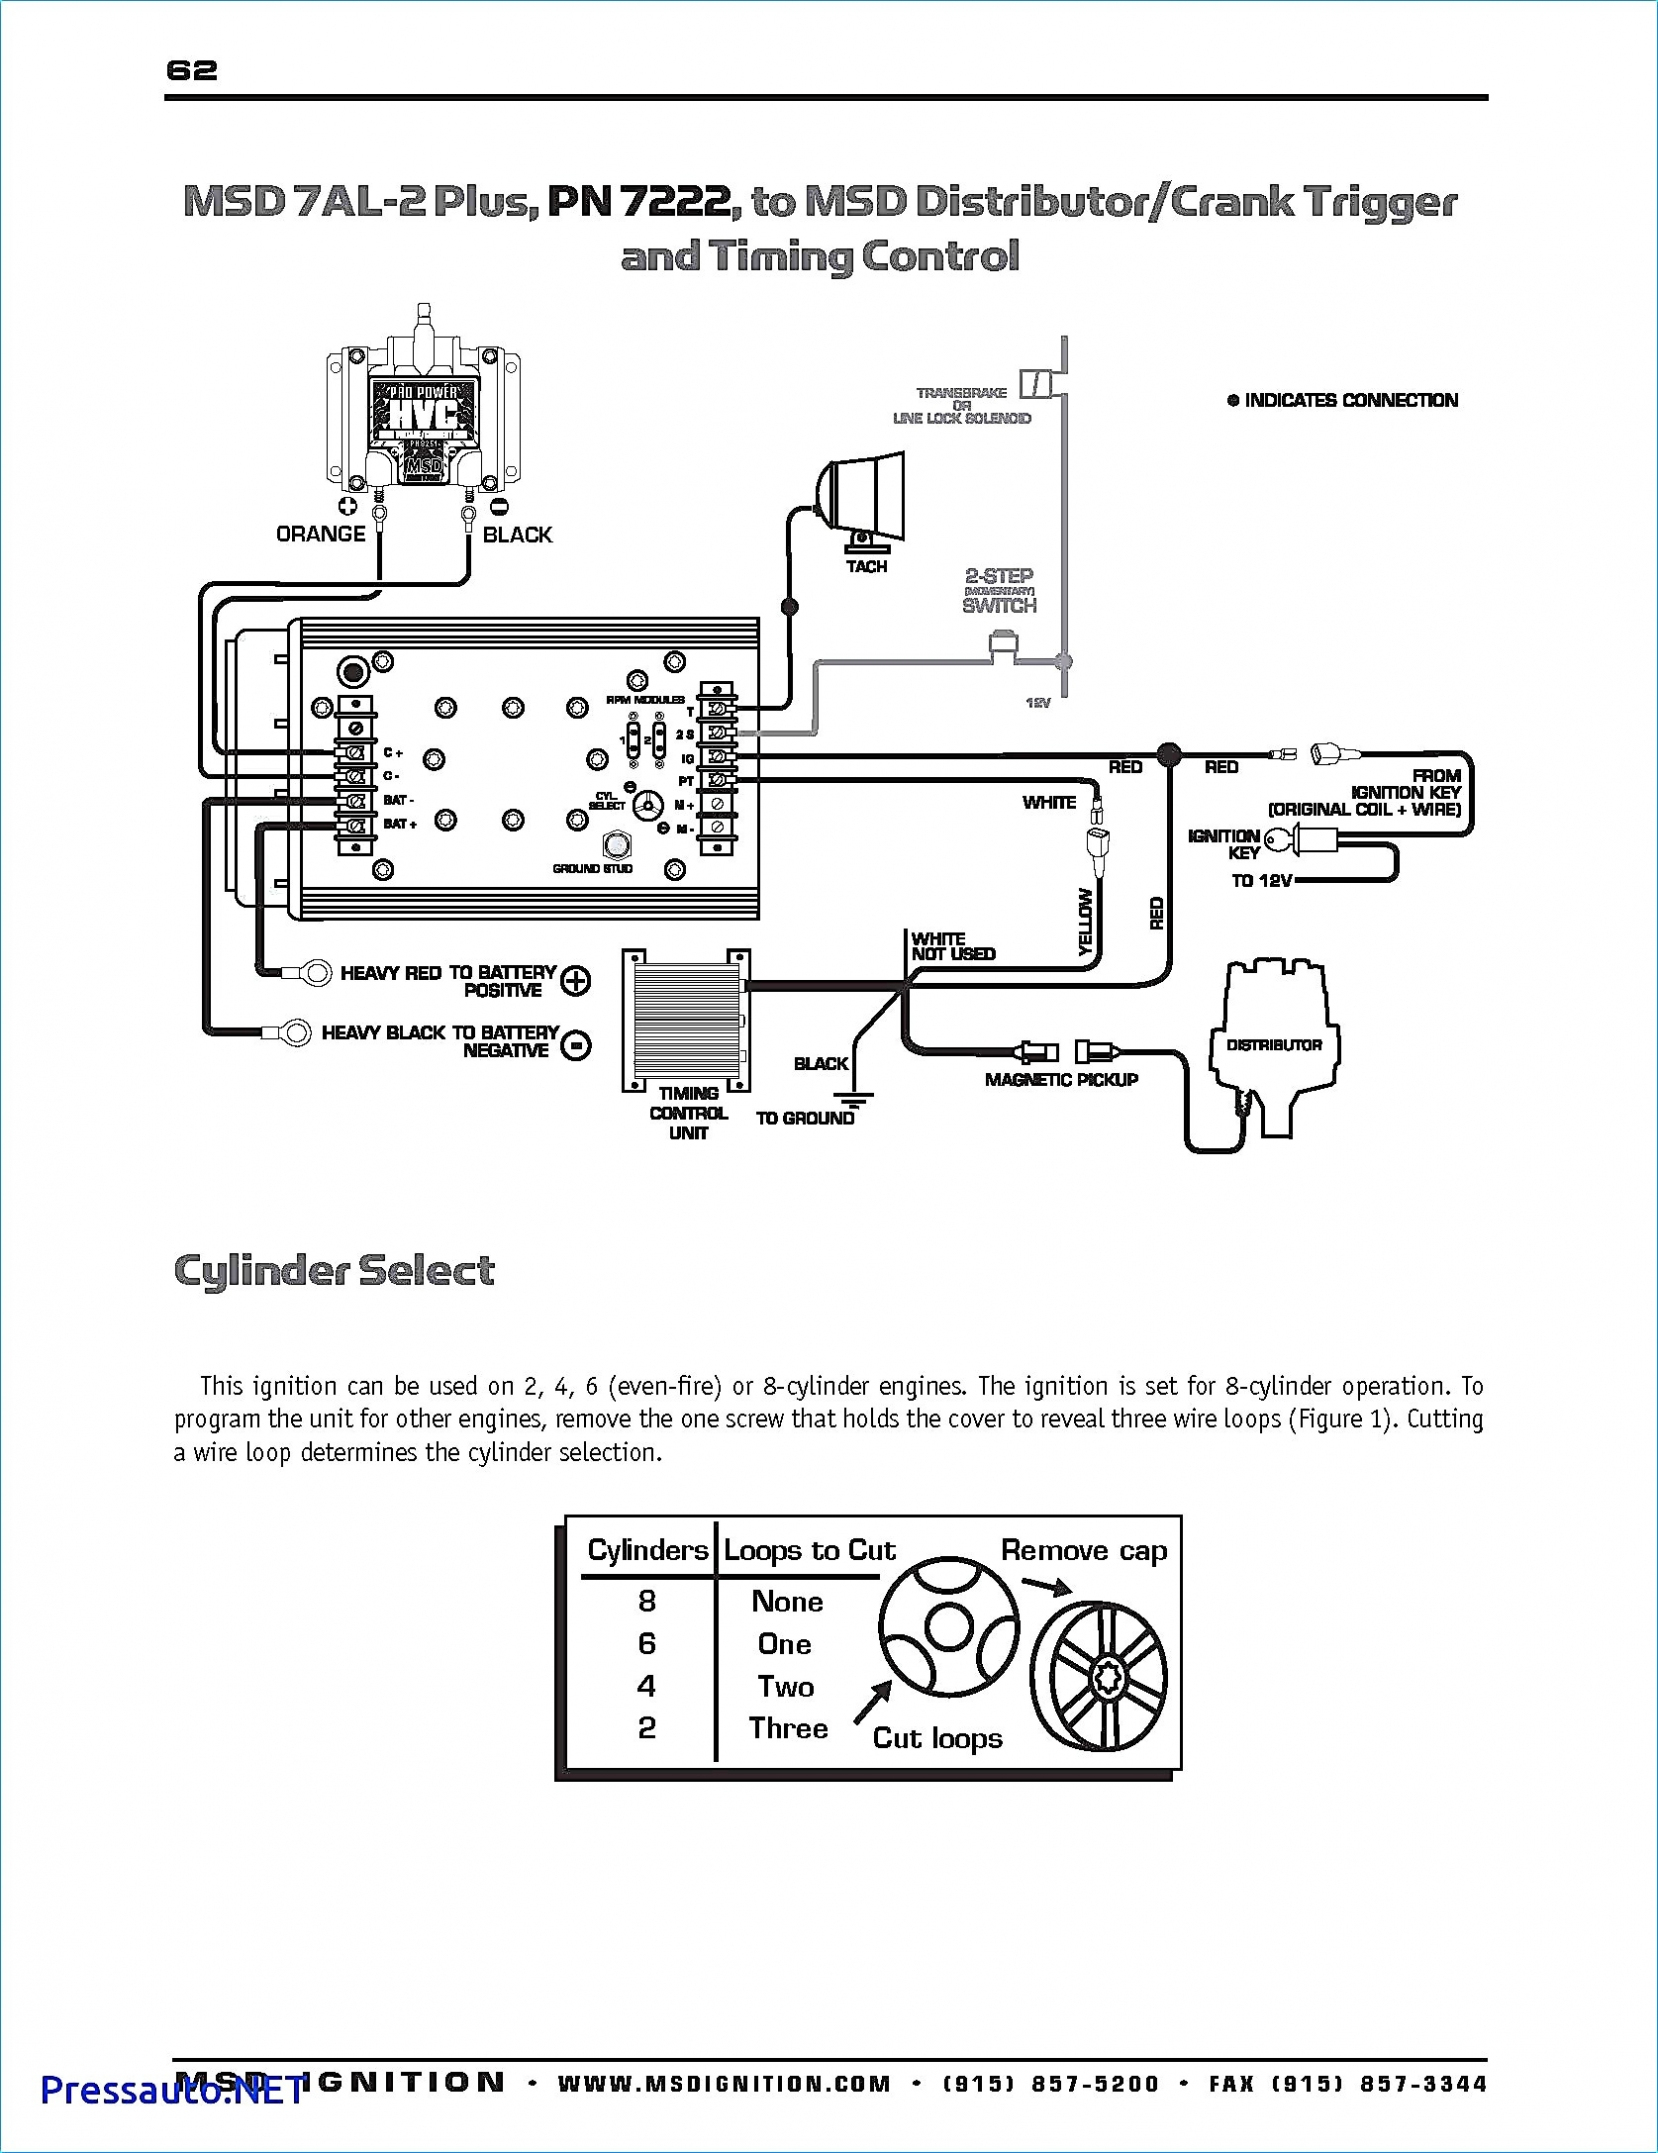 Chevy 350 Wiring Diagram To Distributor - All Wiring Diagram - Chevy 350 Wiring Diagram To Distributor